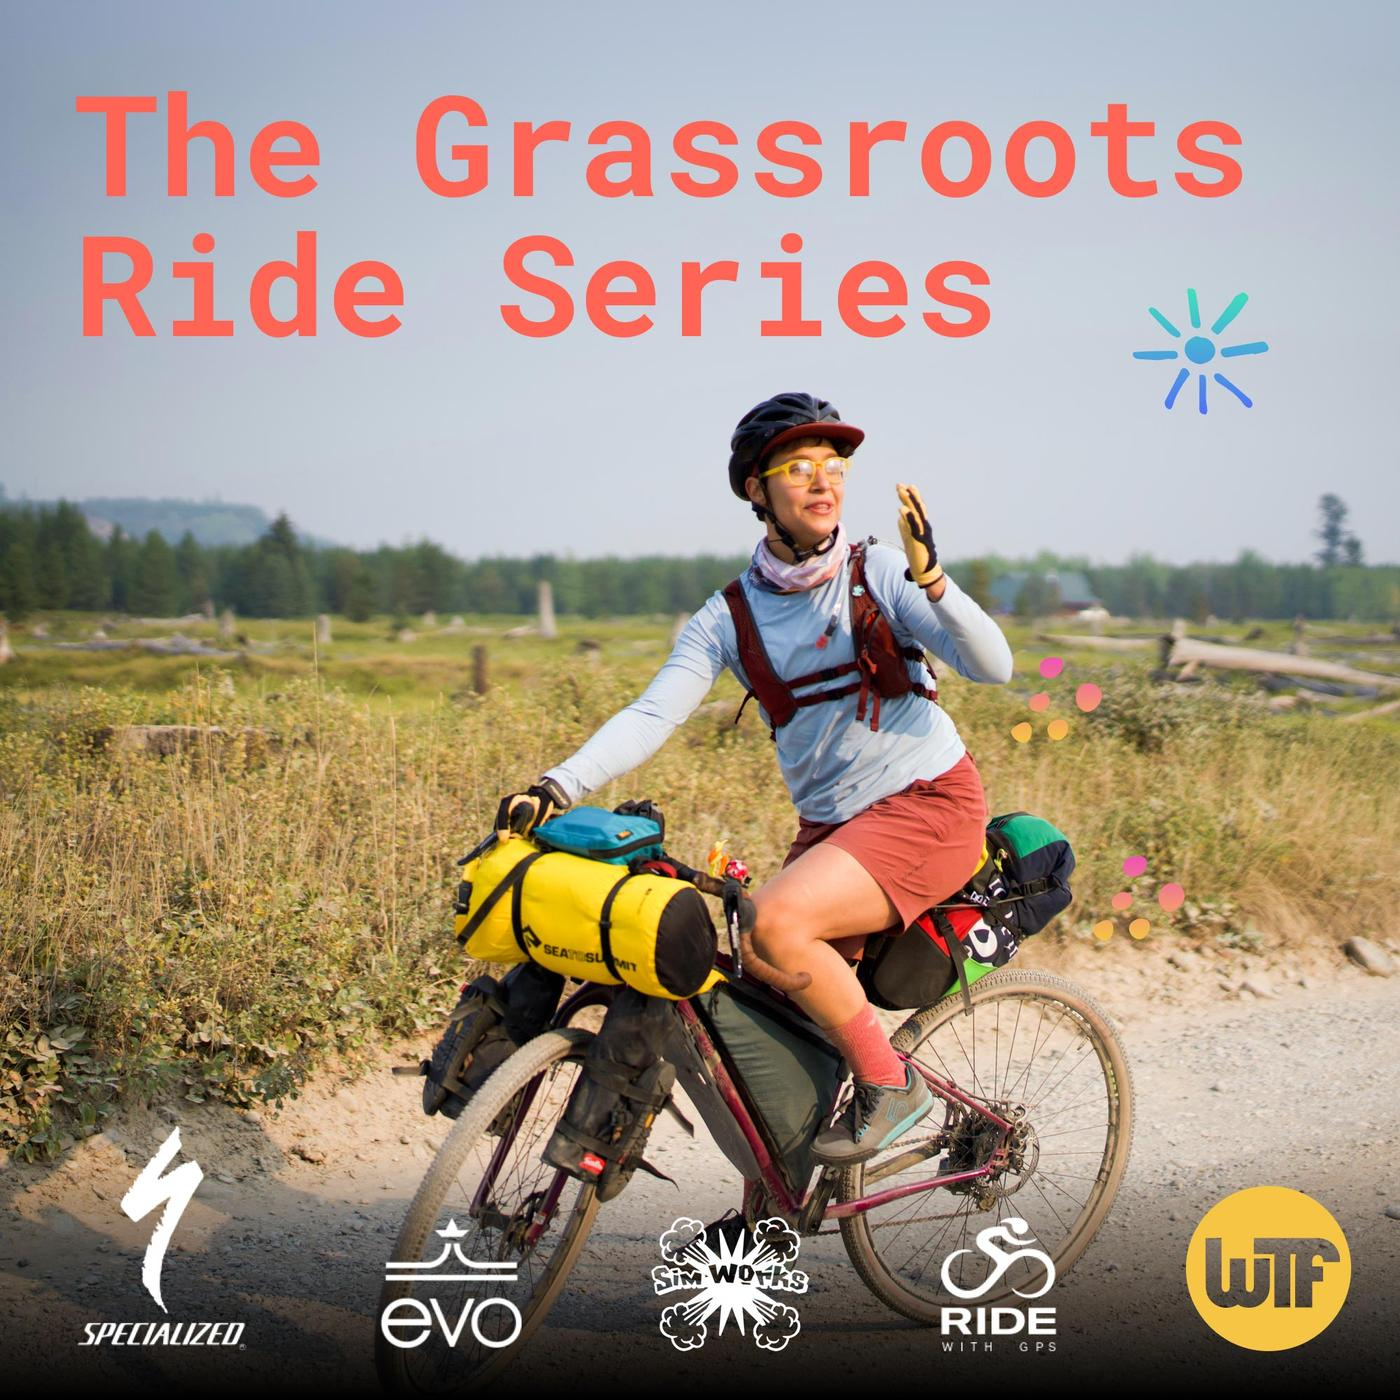 WTF Bikexplorers: Grassroots Ride Series for 2019